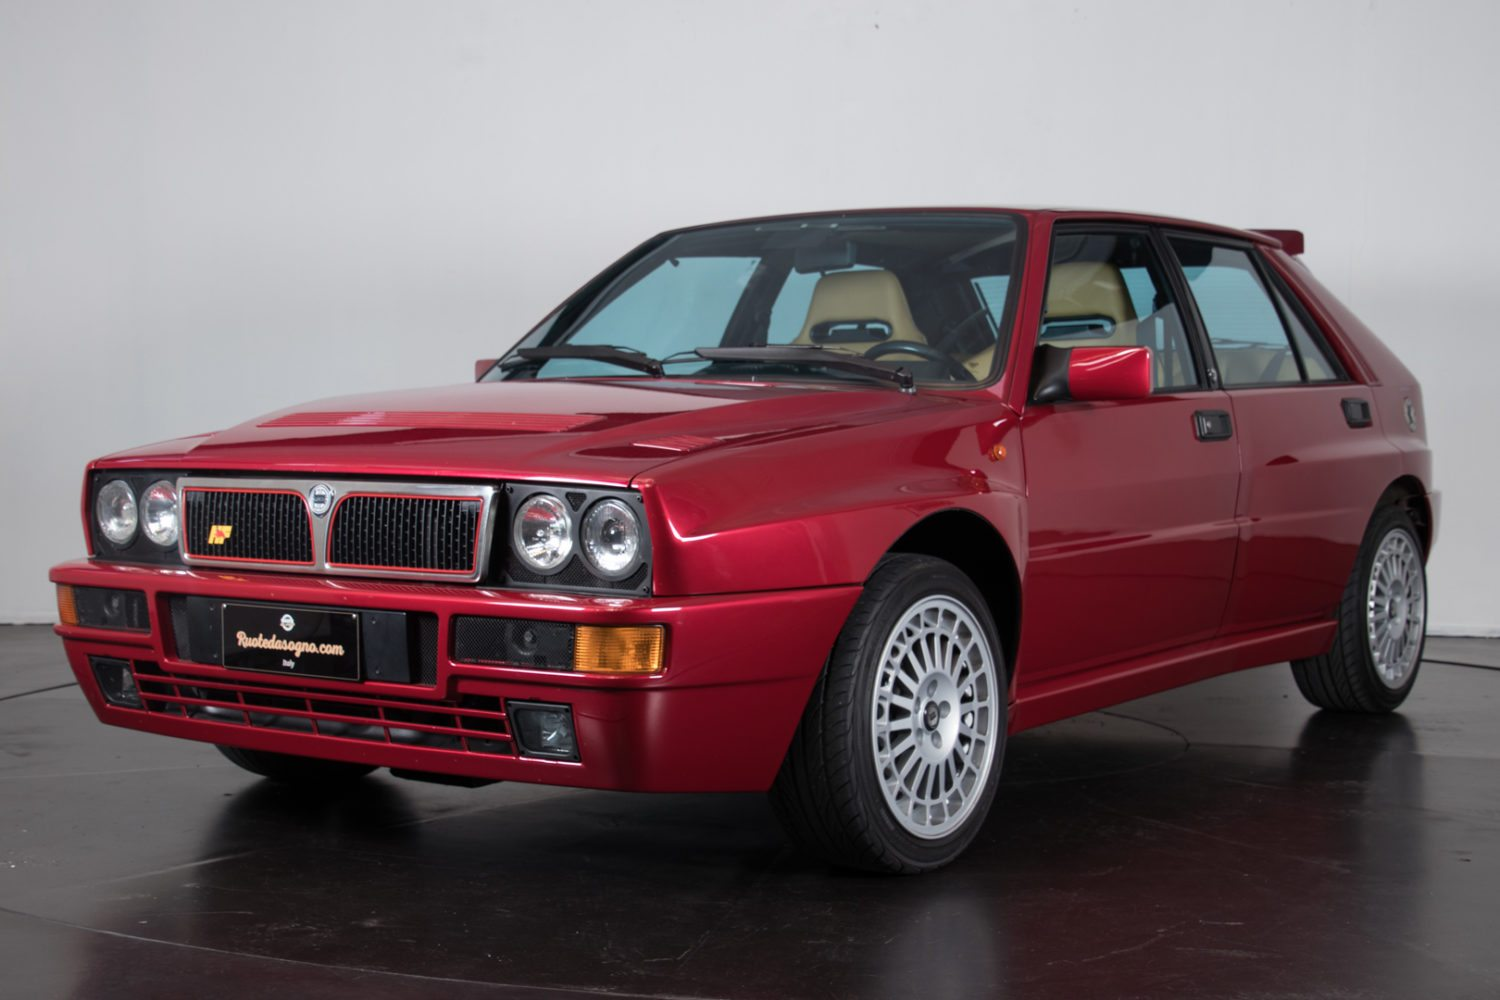 Delta Hf Integrale Evo Dealers Collection Limited Edition